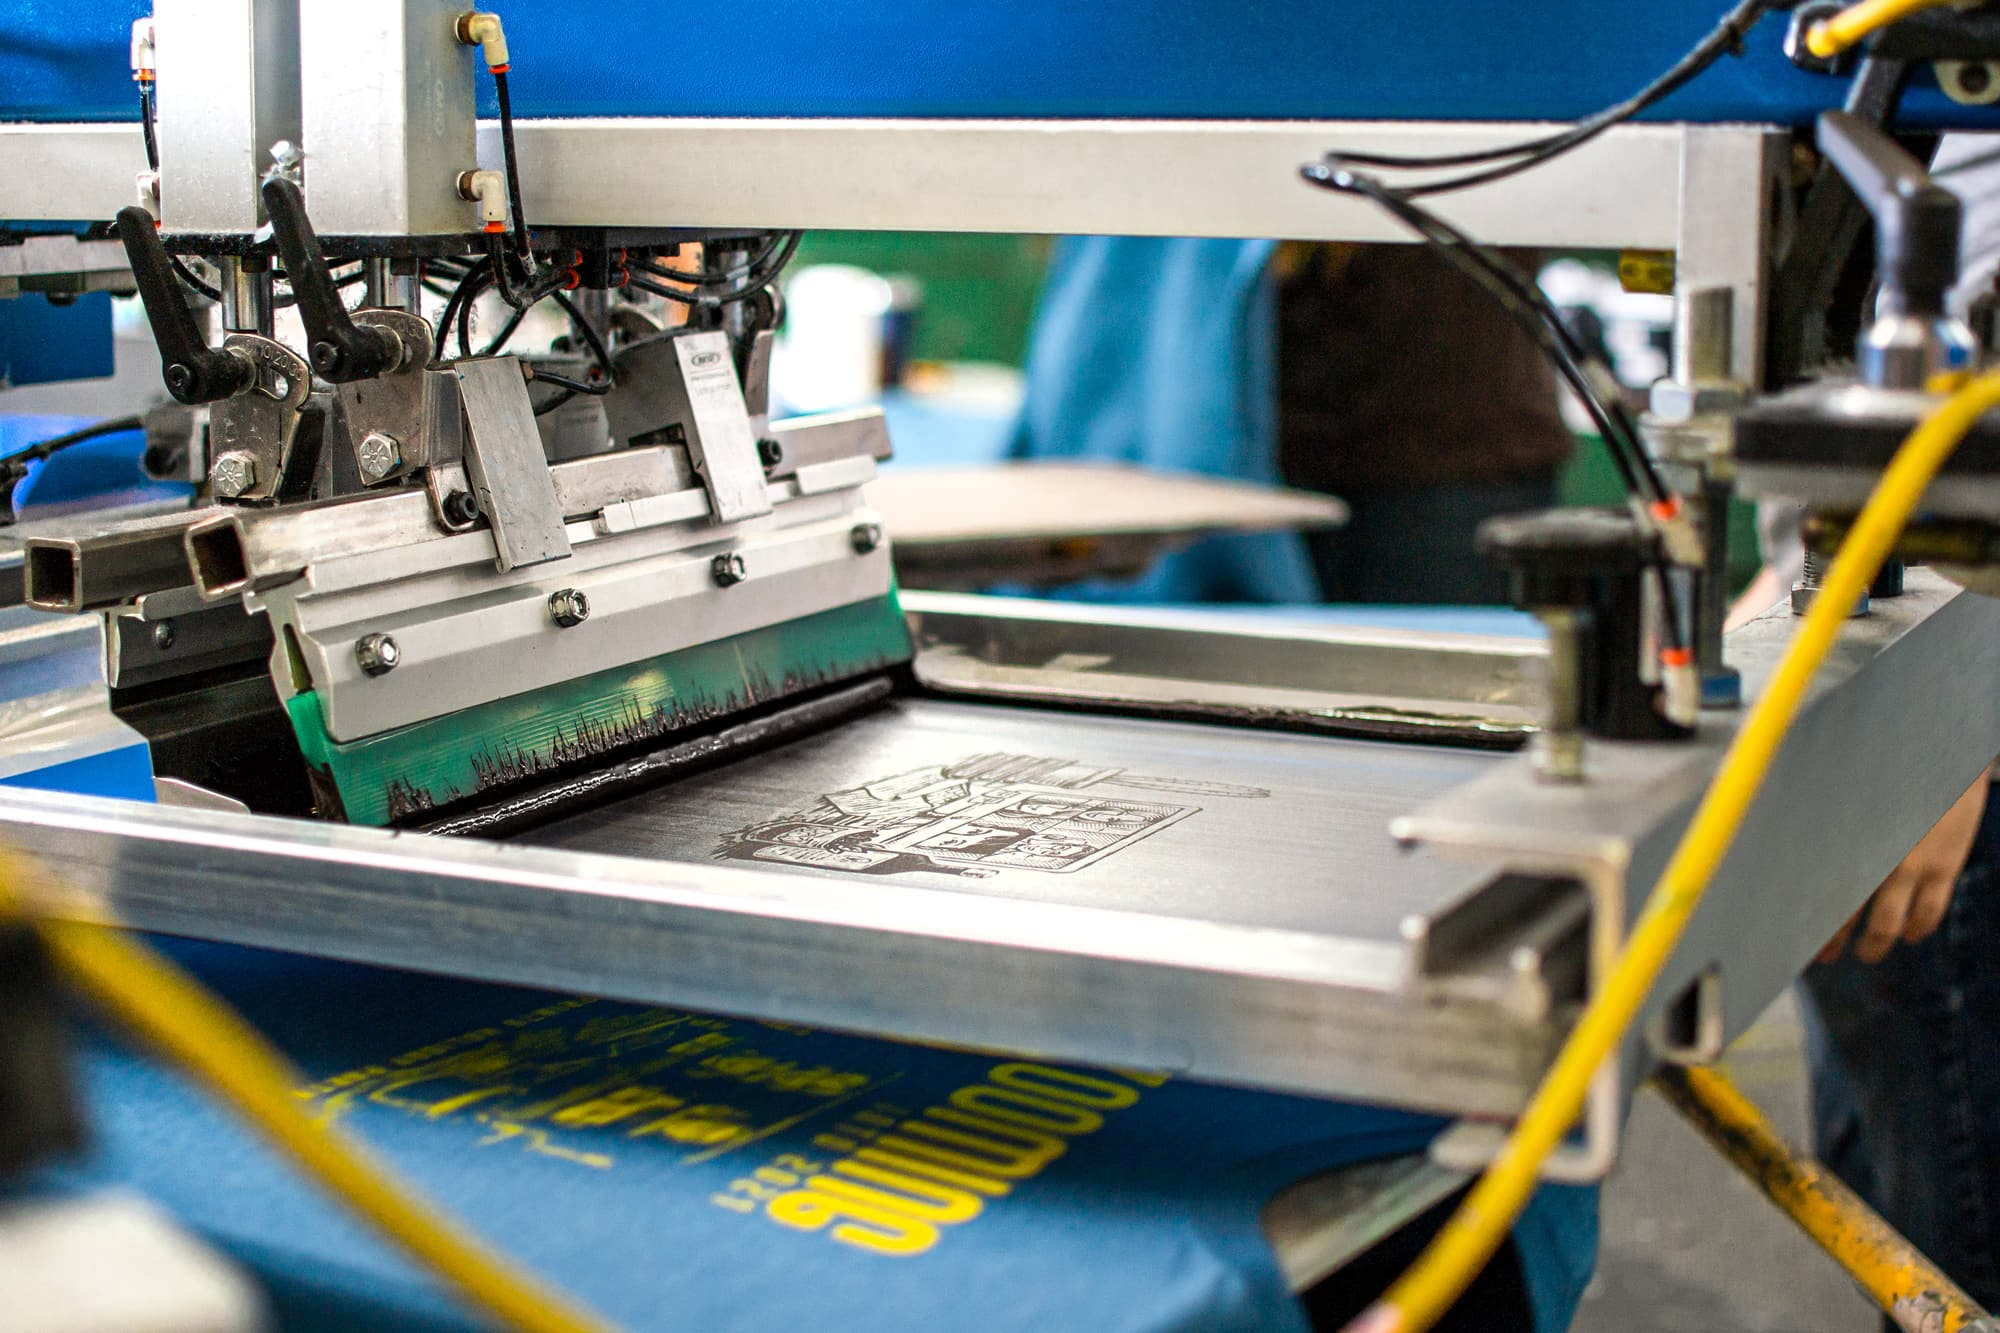 Image from the UberPrints warehouse showing a design being screen printed onto a shirt.